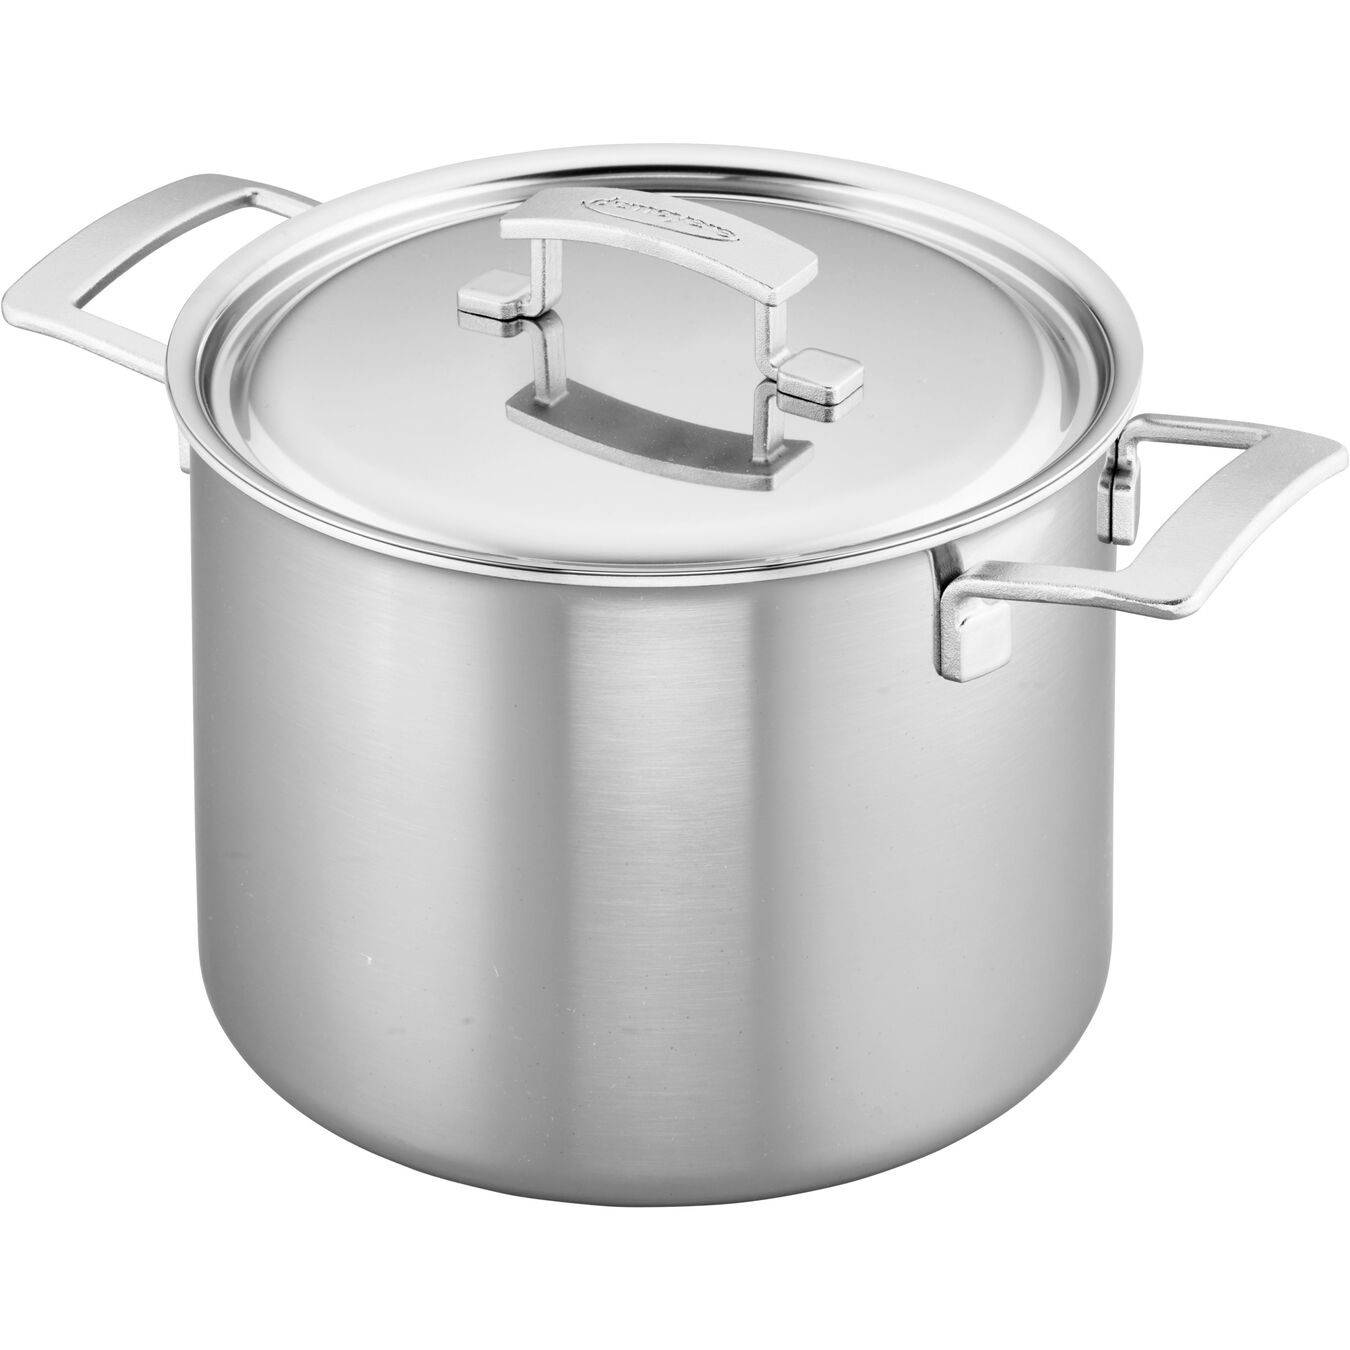 270.5-oz Stock pot with lid, 18/10 Stainless Steel ,,large 2